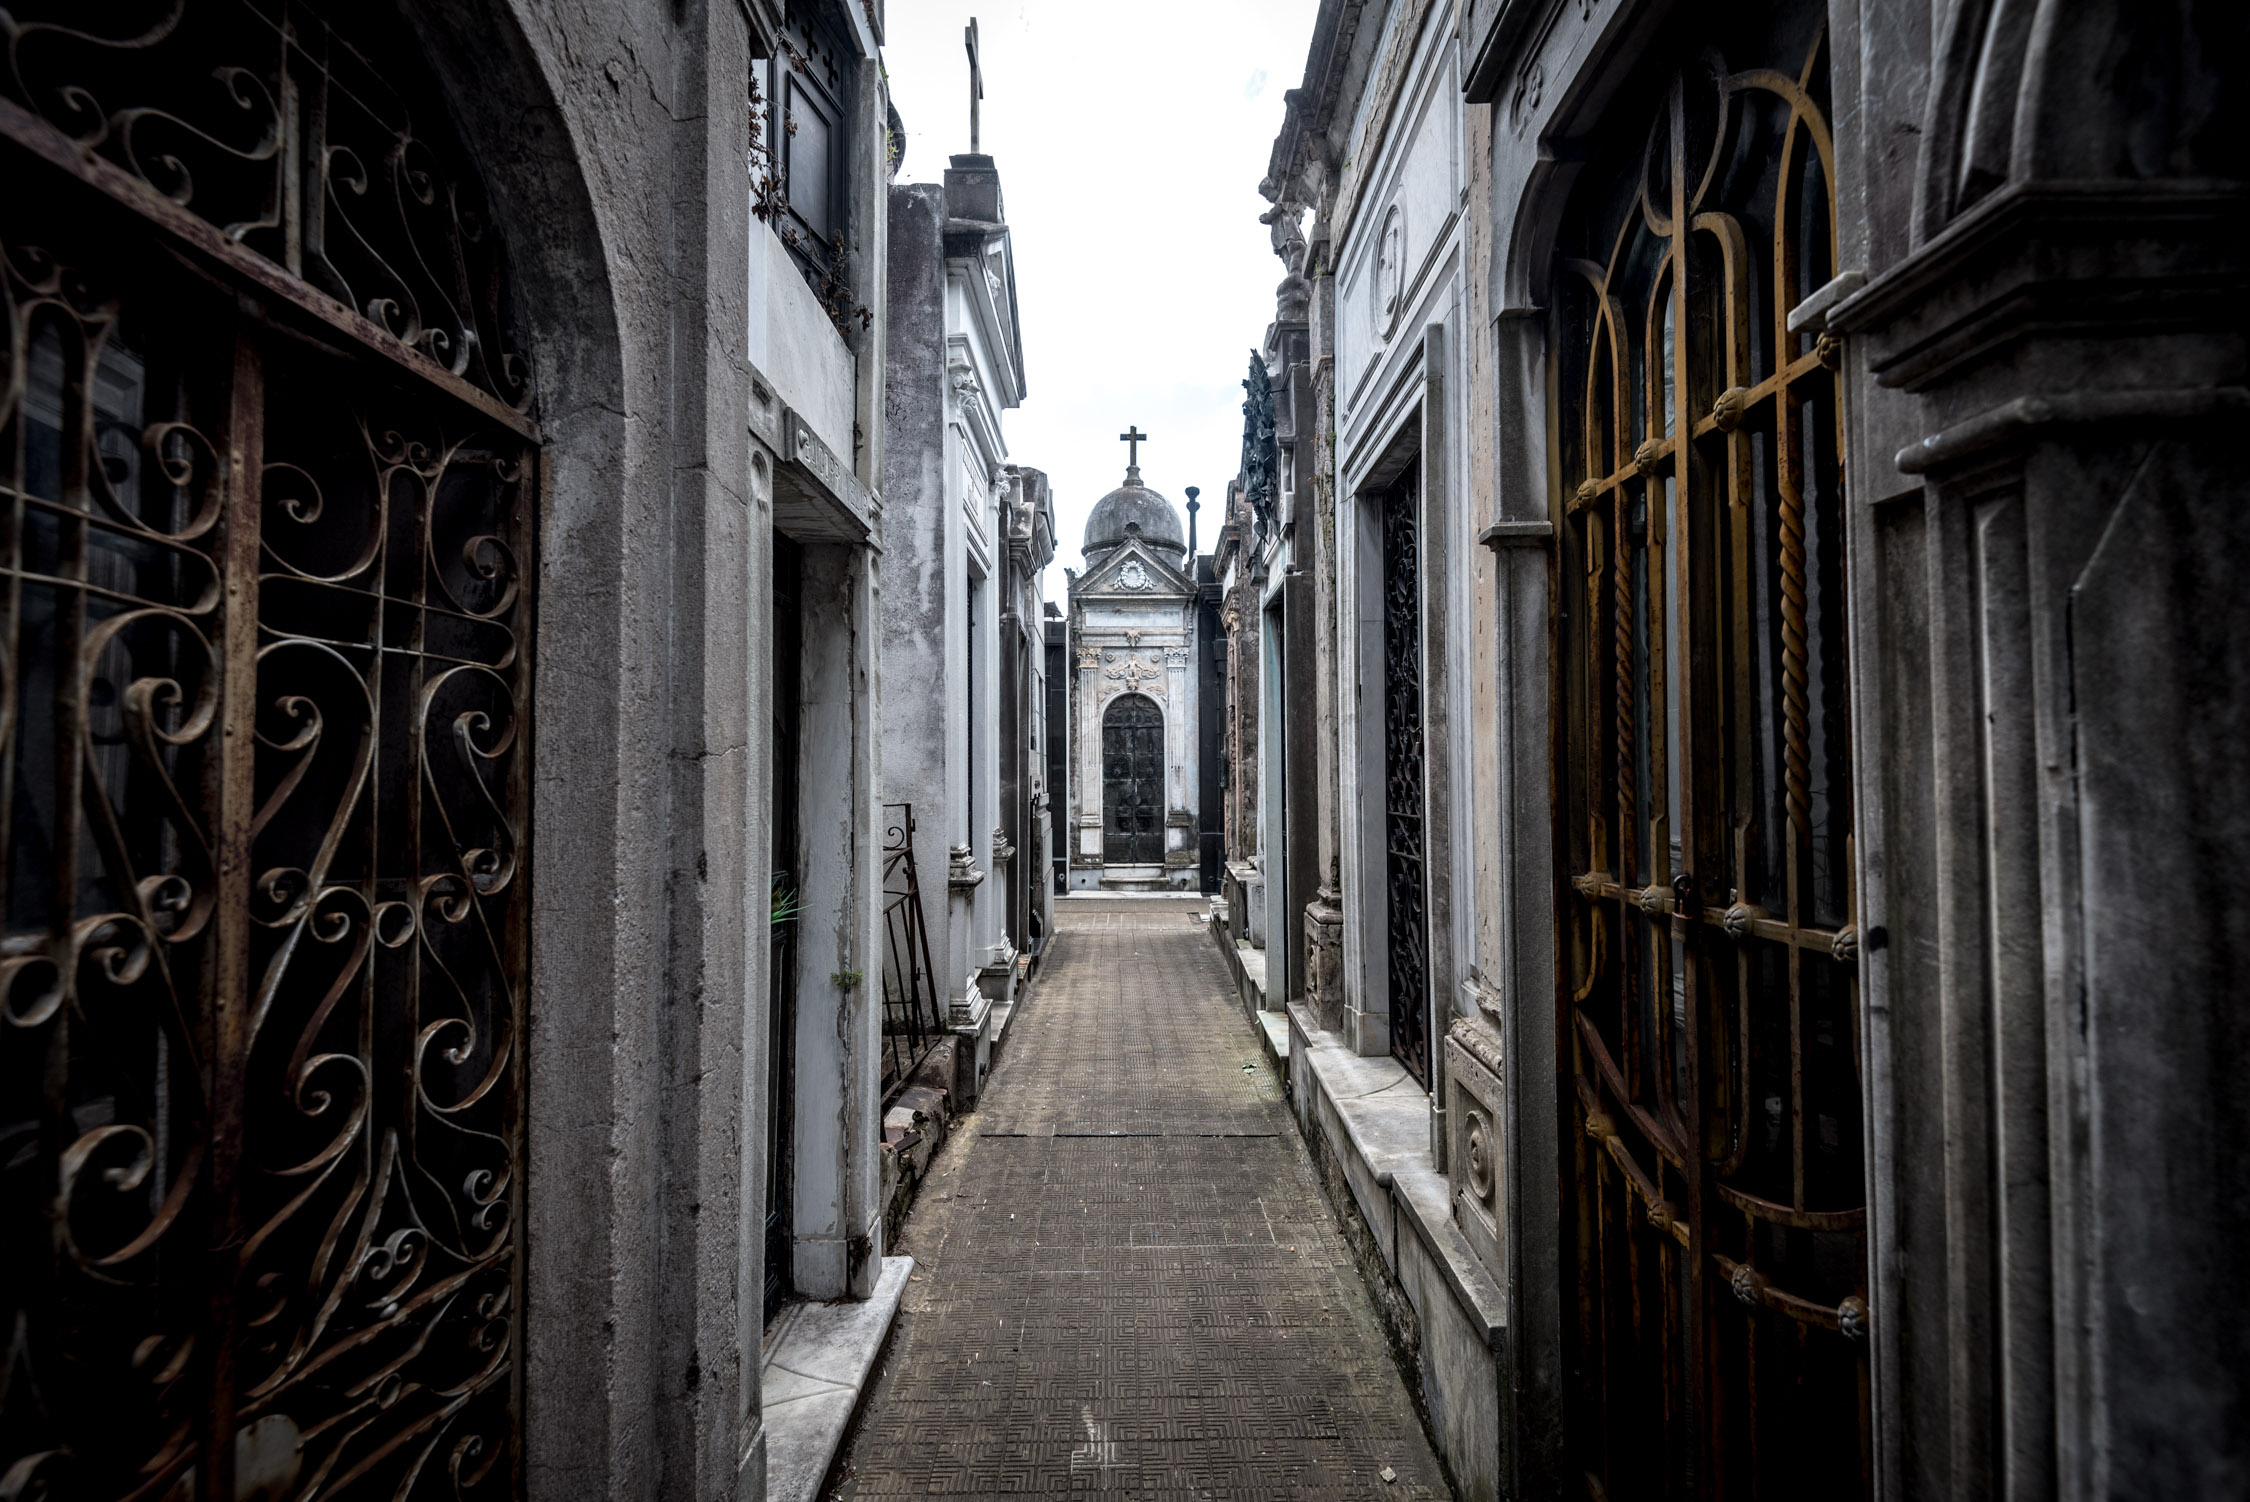 The famous Recoleta Cemetery is just a 5 minute walk from Mio Hotel